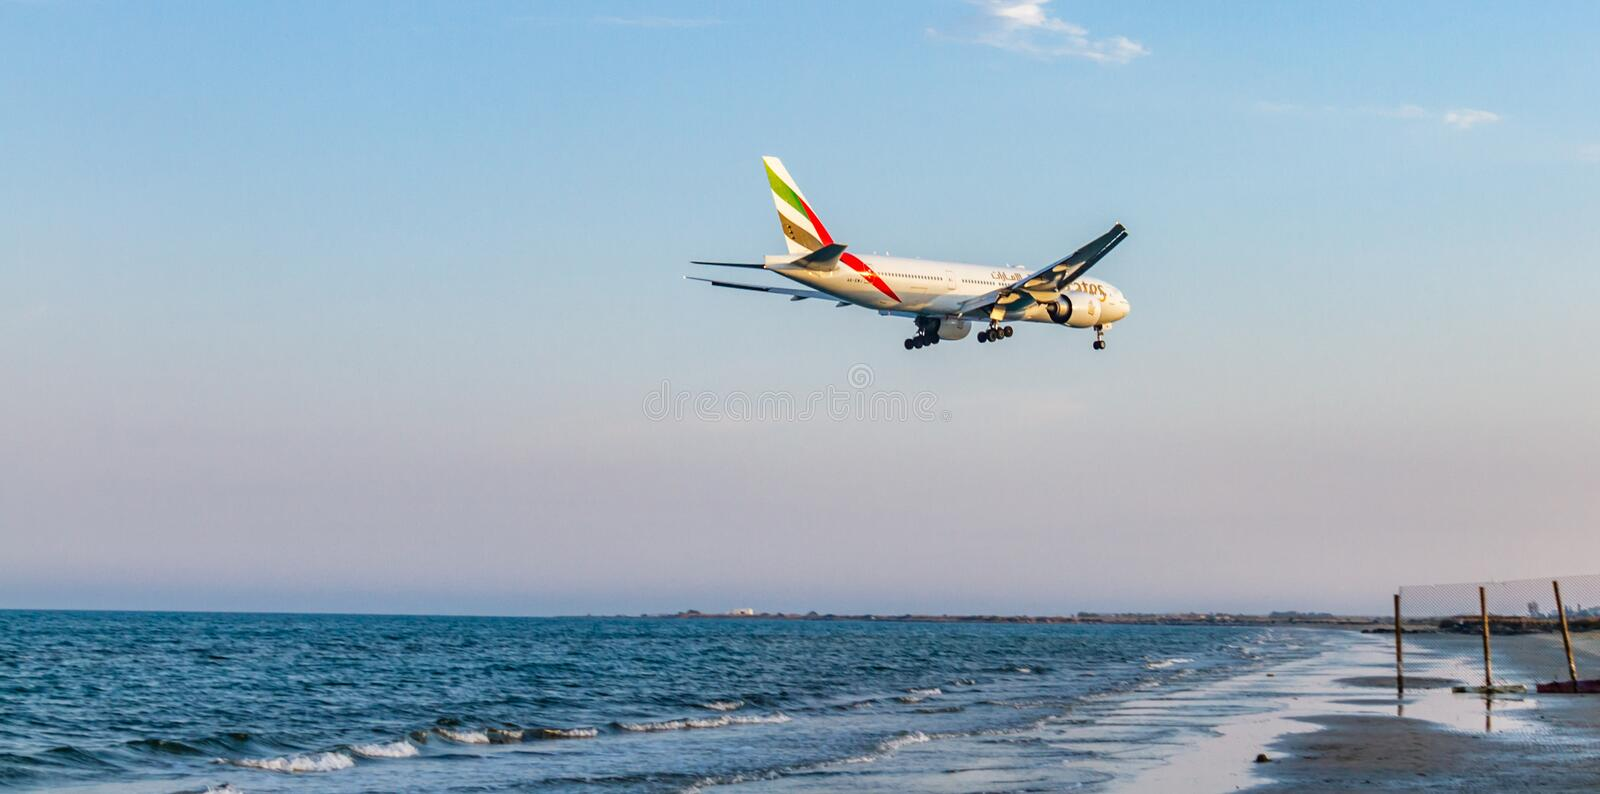 Emirates Airline Boeing 777 above the sea seconds before landing. Larnaca, Cyprus - April 29, 2018: Emirates Airline Boeing 777 above the sea seconds before royalty free stock image